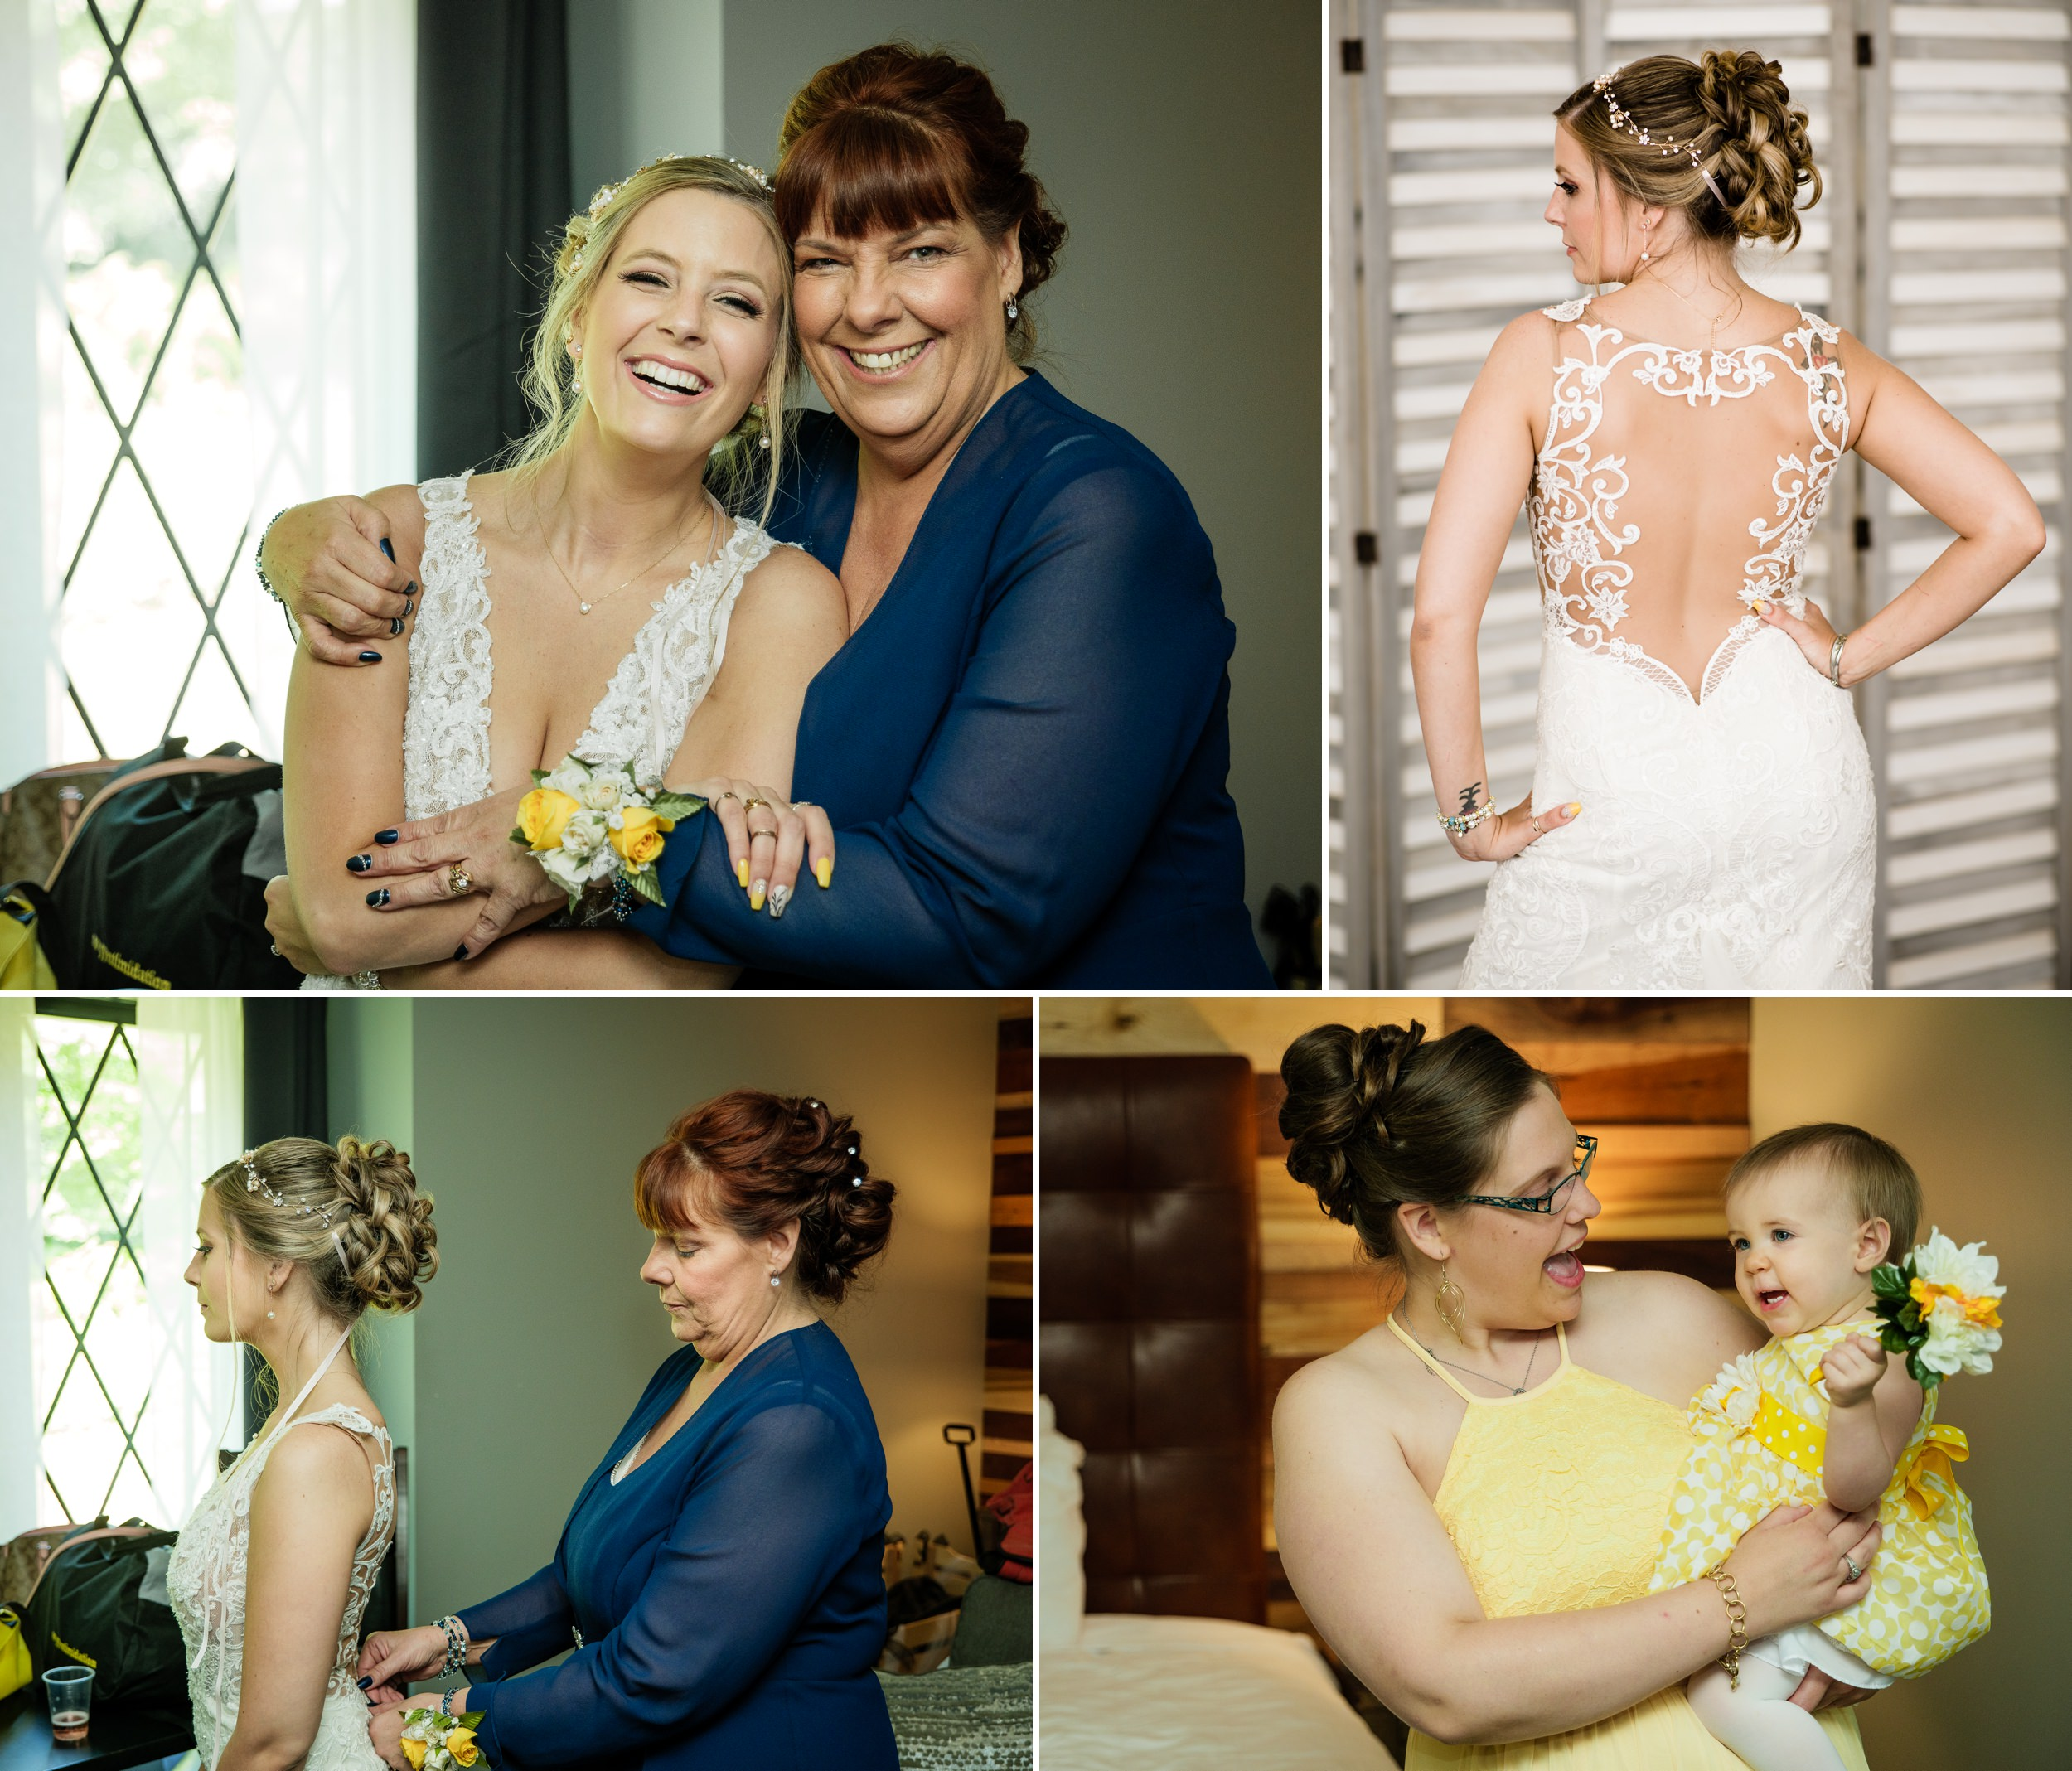 Mother of the bride assists her daughter before she walks down the aisle.